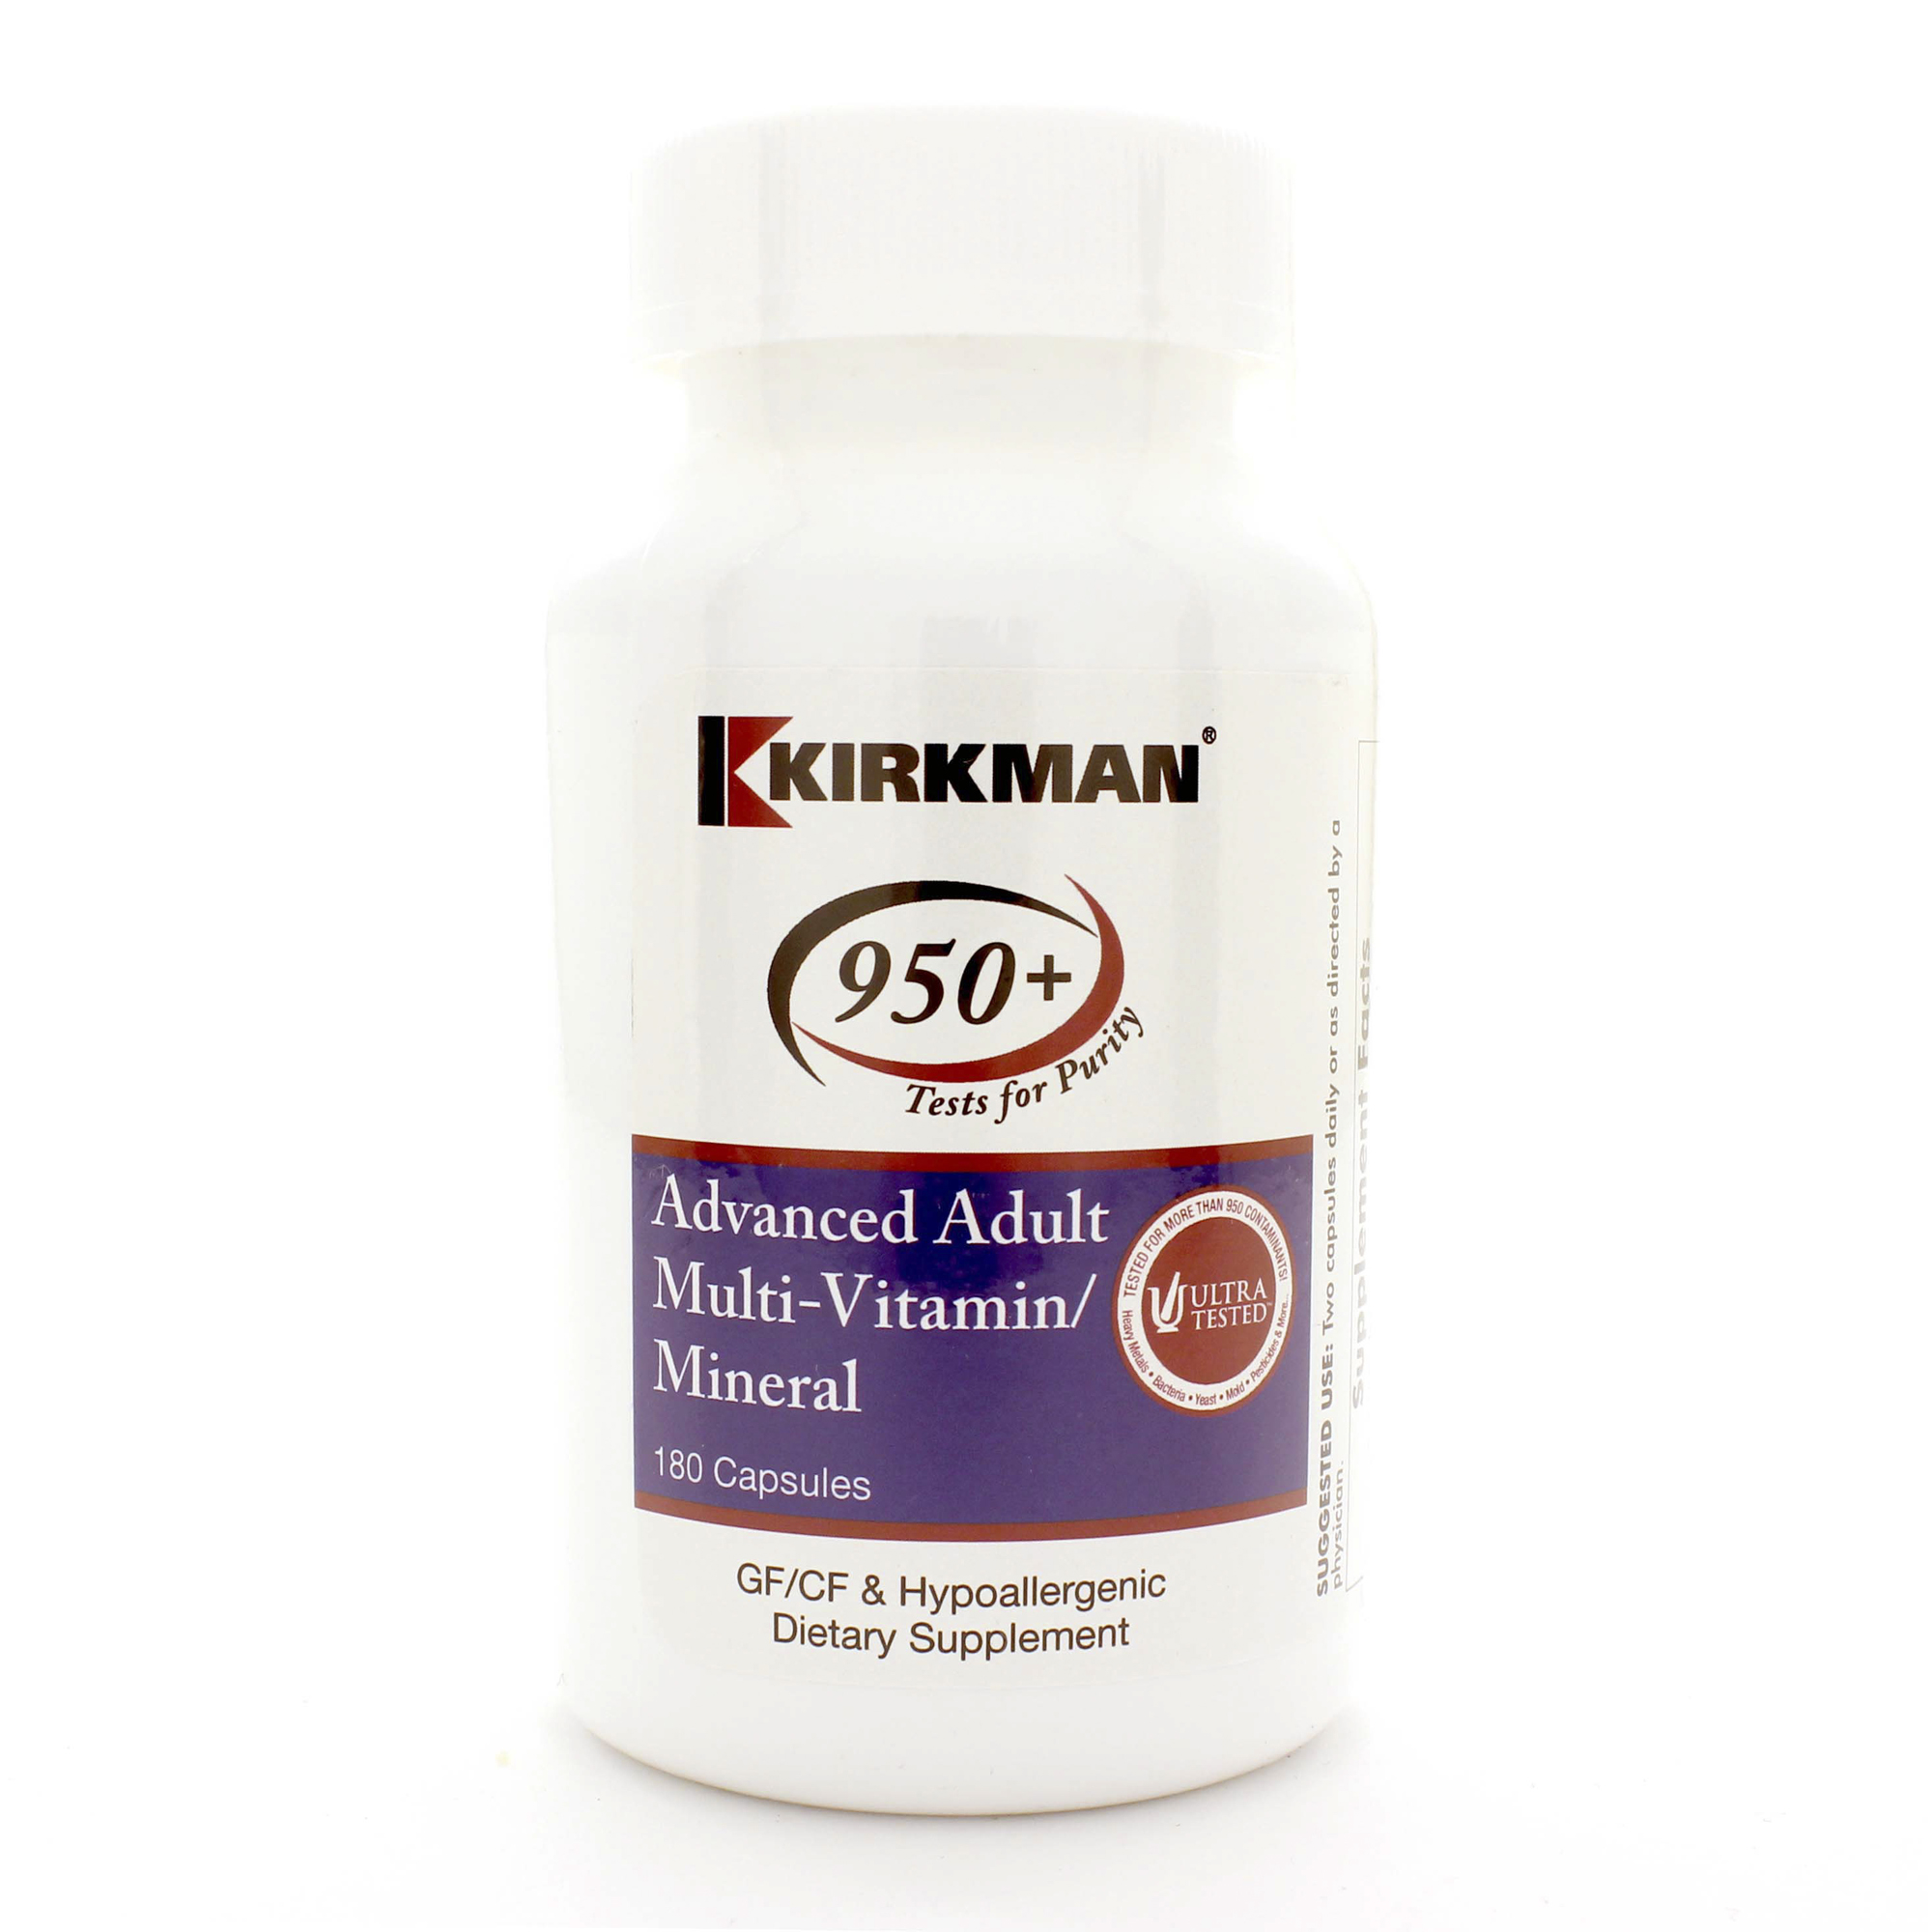 Advanced Adult Multi-Vitamin/Mineral 180c - Hypoallergenic